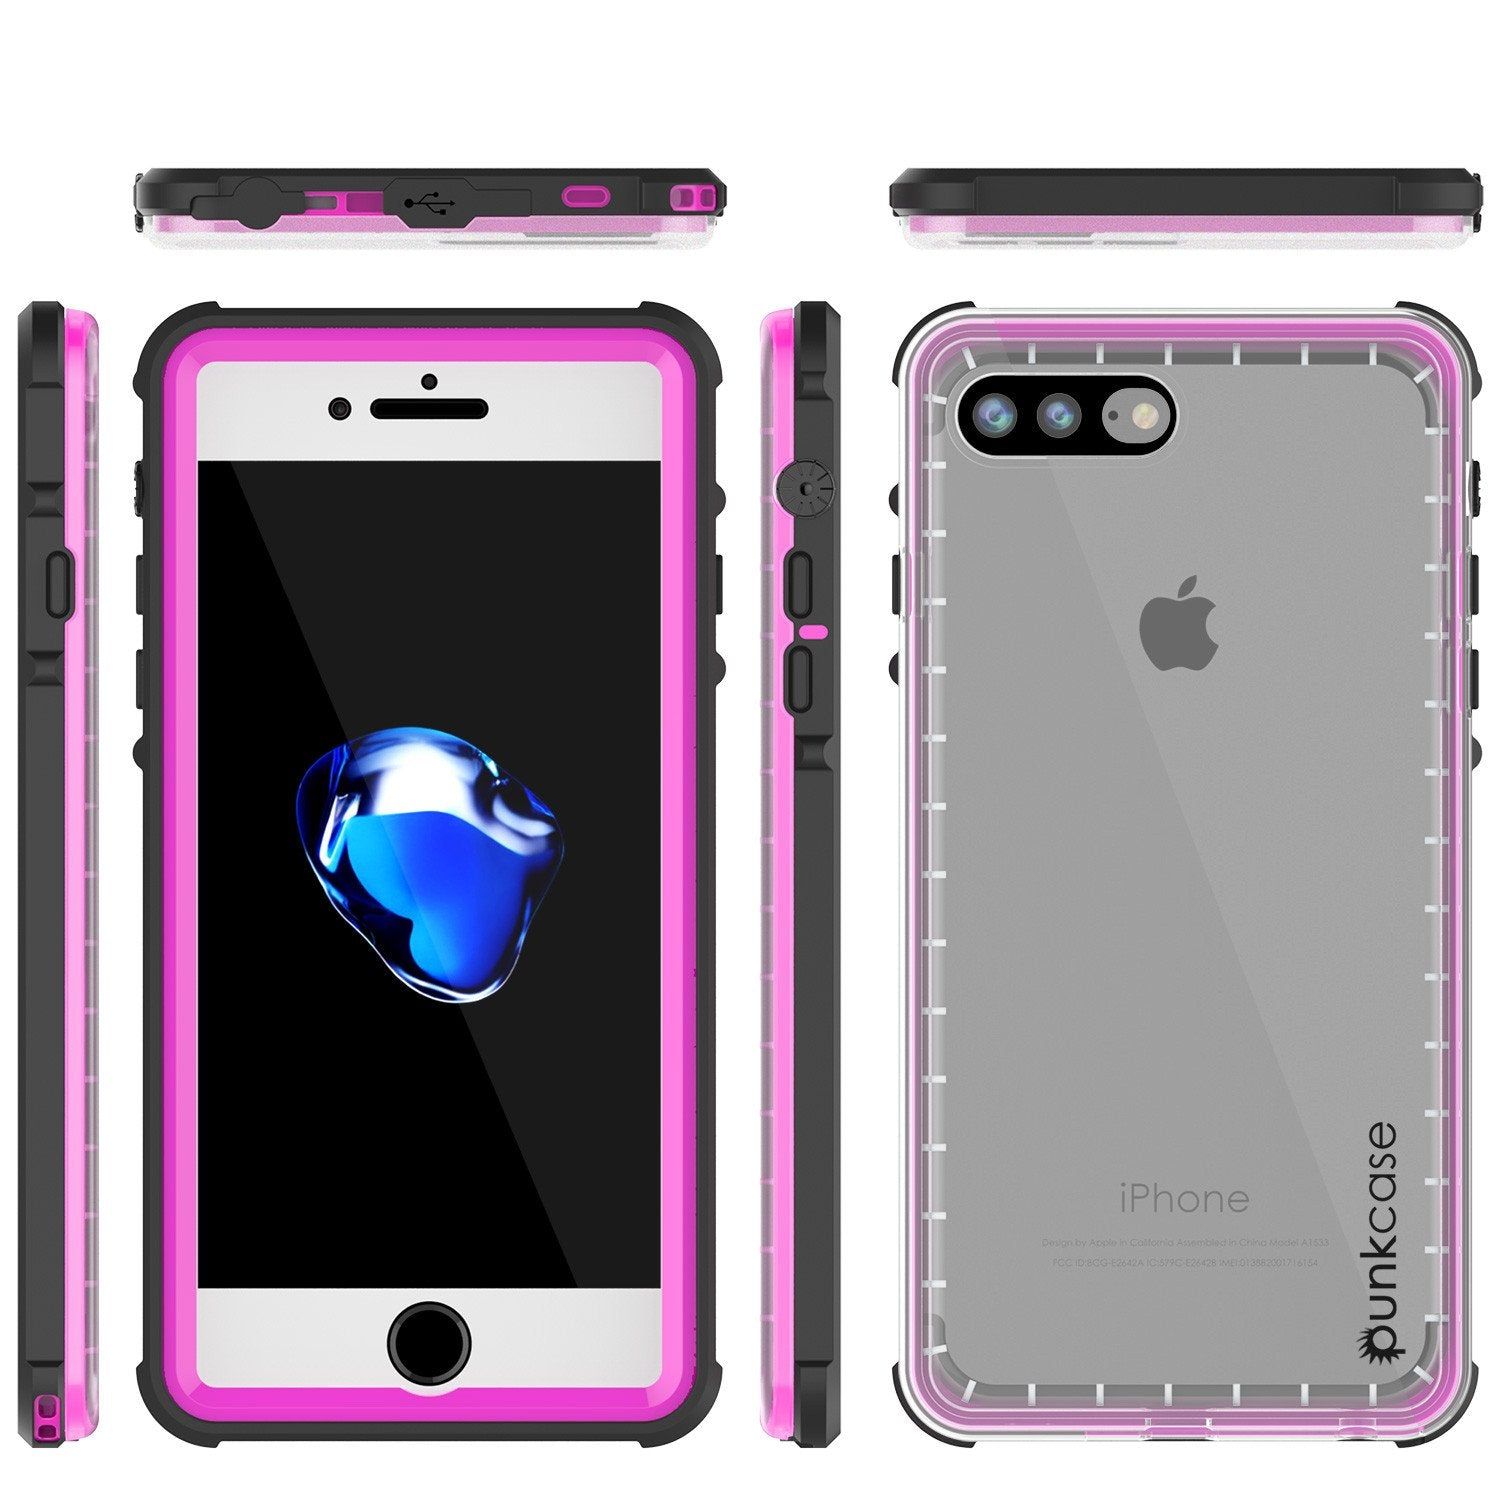 iPhone 7+ Plus Waterproof Case, PUNKcase CRYSTAL Pink W/ Attached Screen Protector  | Warranty - PunkCase NZ